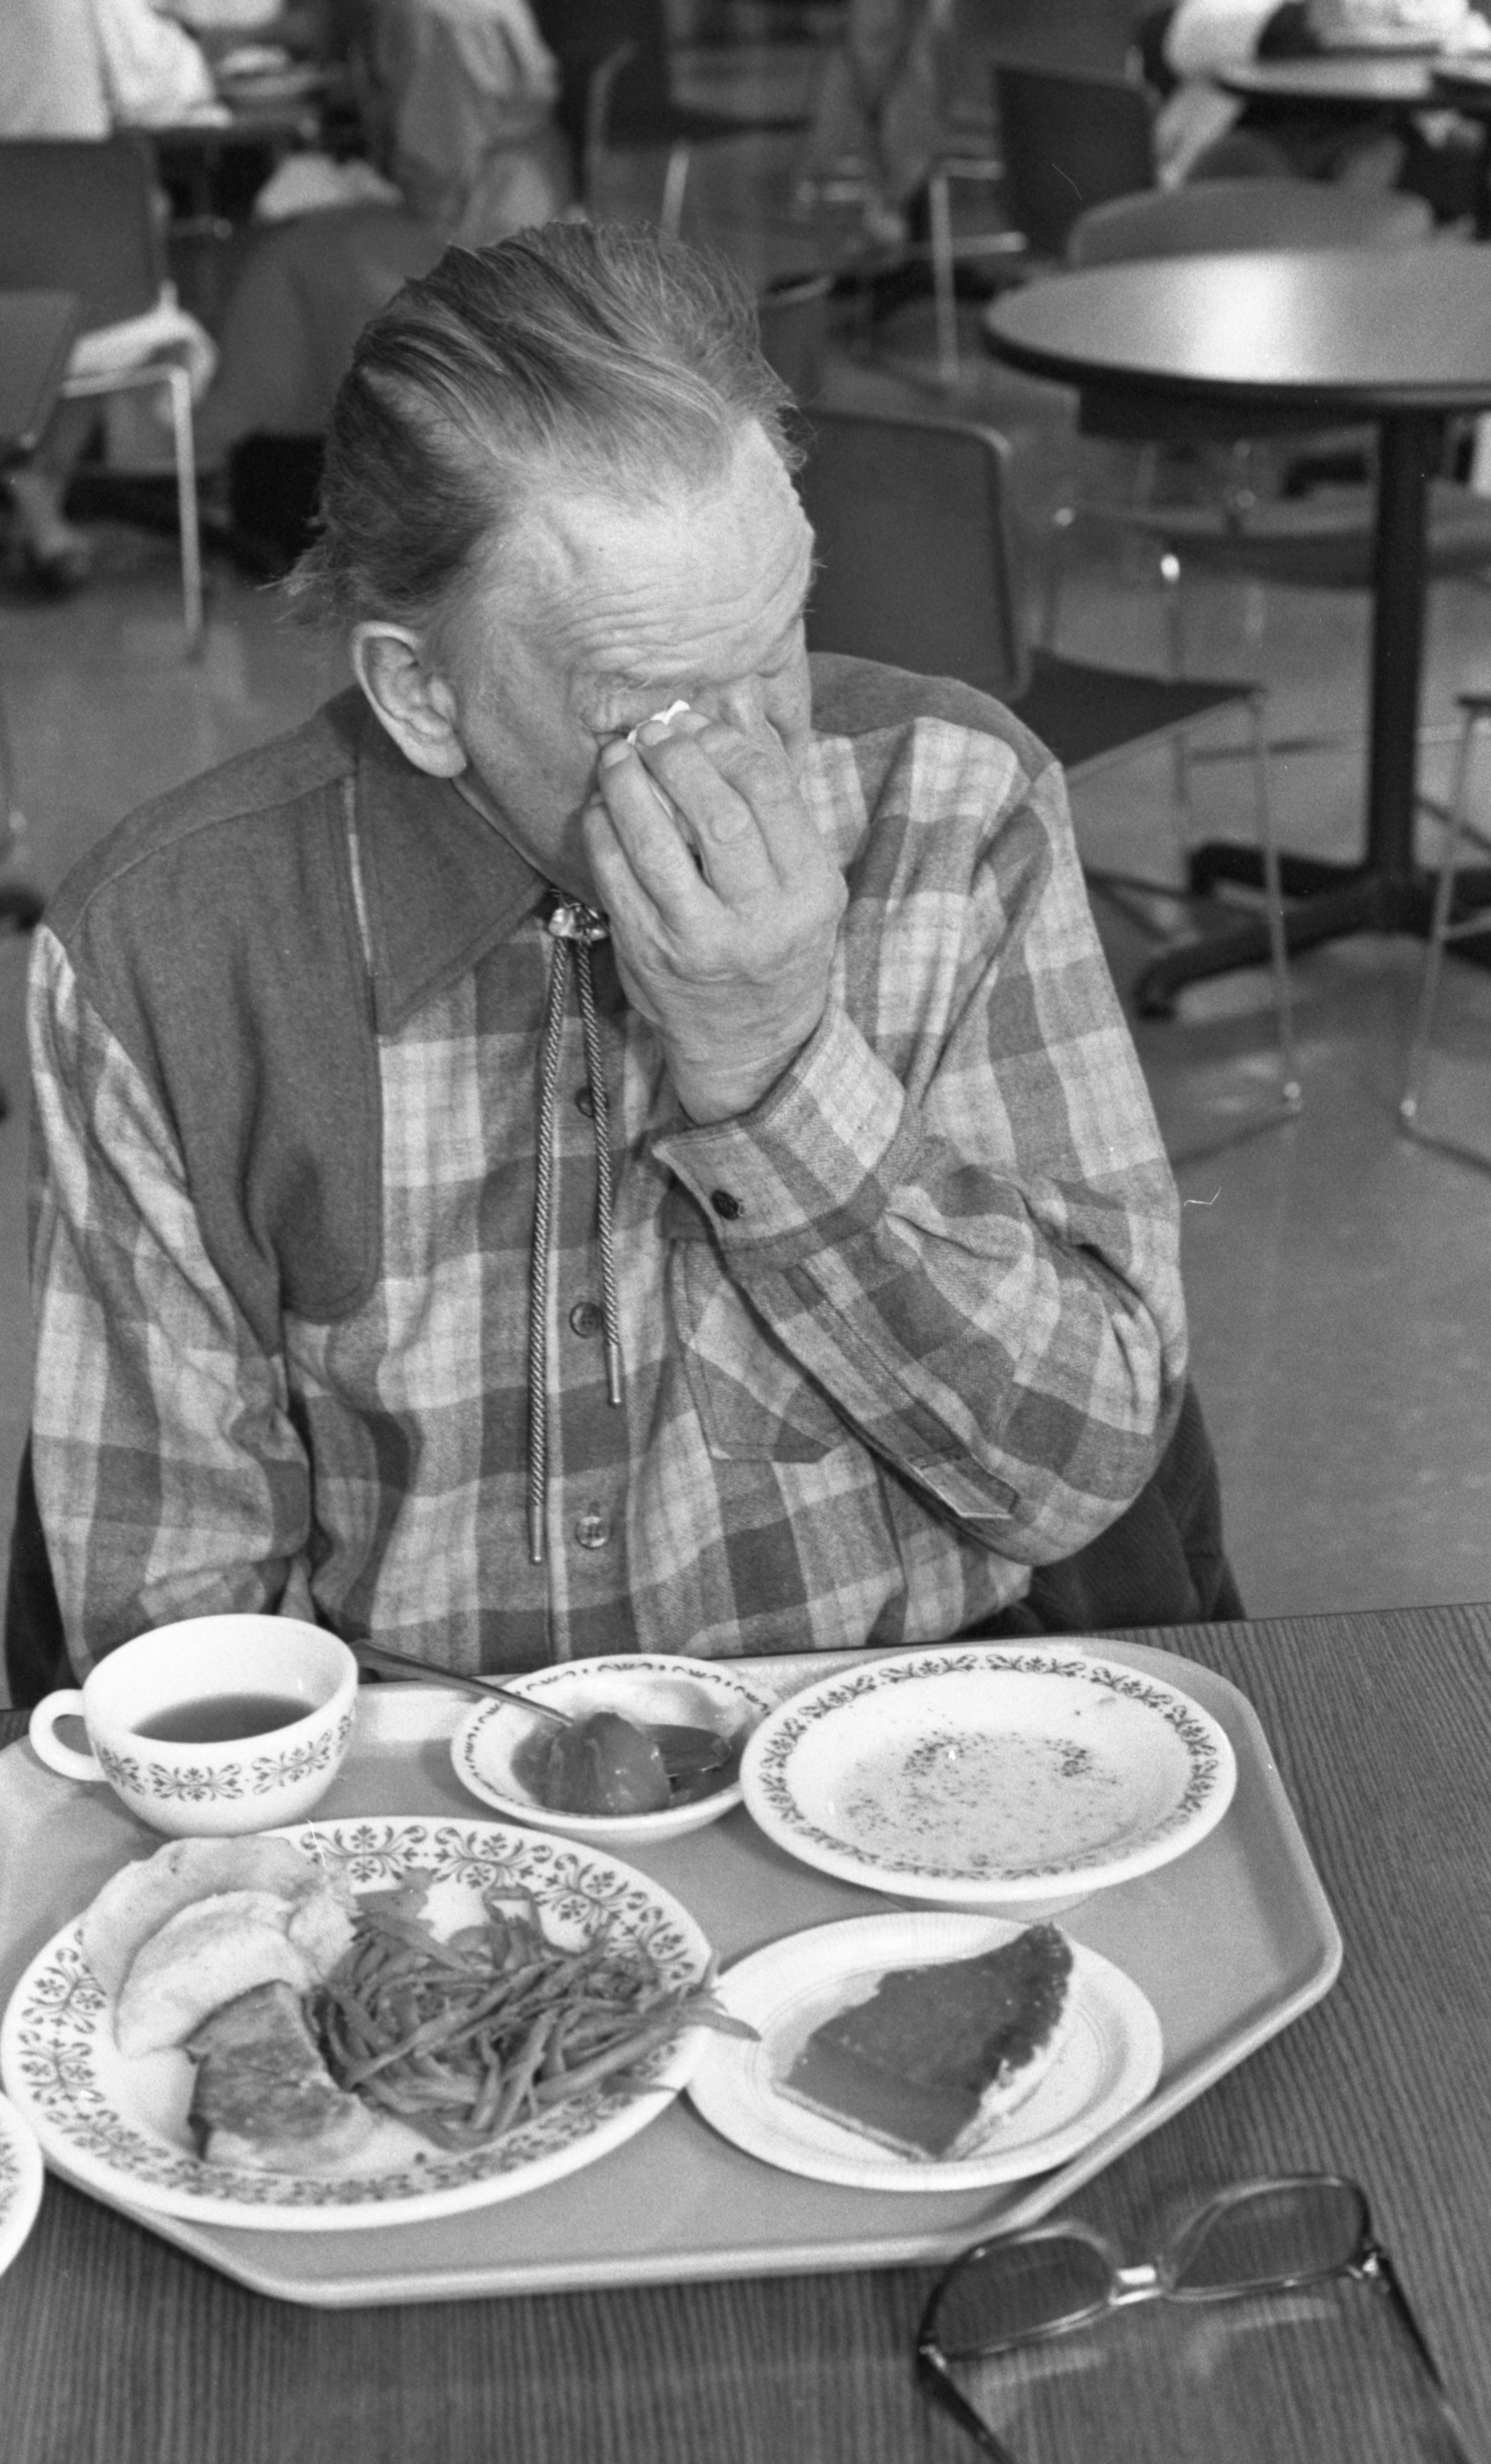 Bill Hersch Misses His Deceased Wife During Thanksgiving Day Dinner, November 1989 image